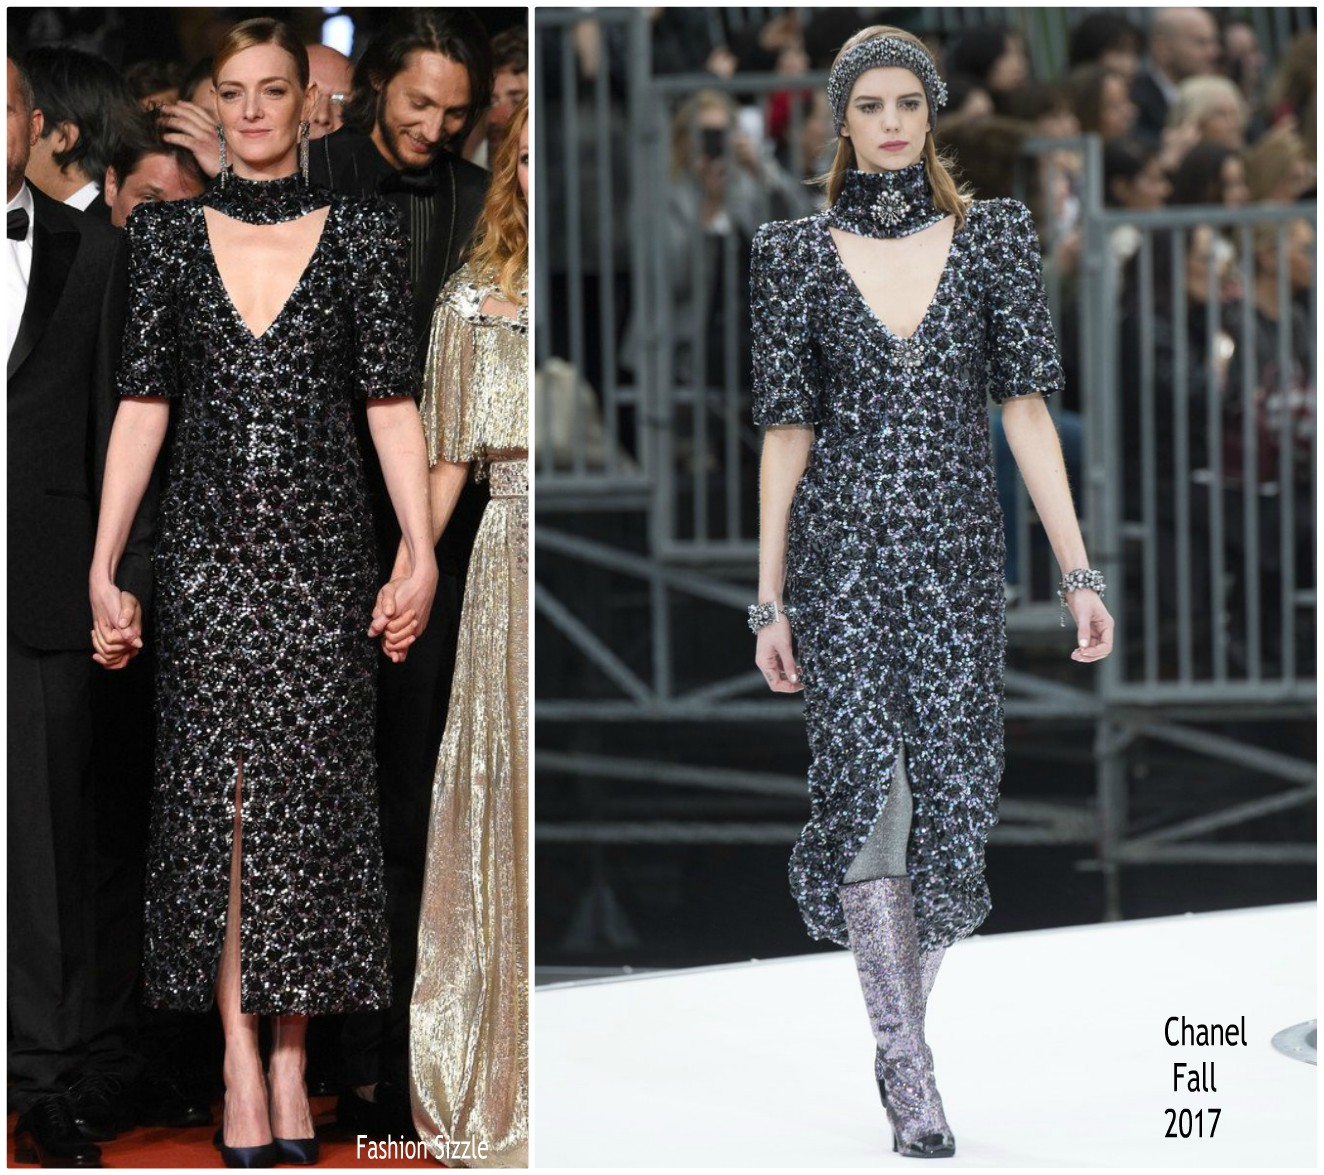 kate-moran-in-chanel-knife-heart-un-couteau-dans-le-coeur-cannes-film-festival-premiere